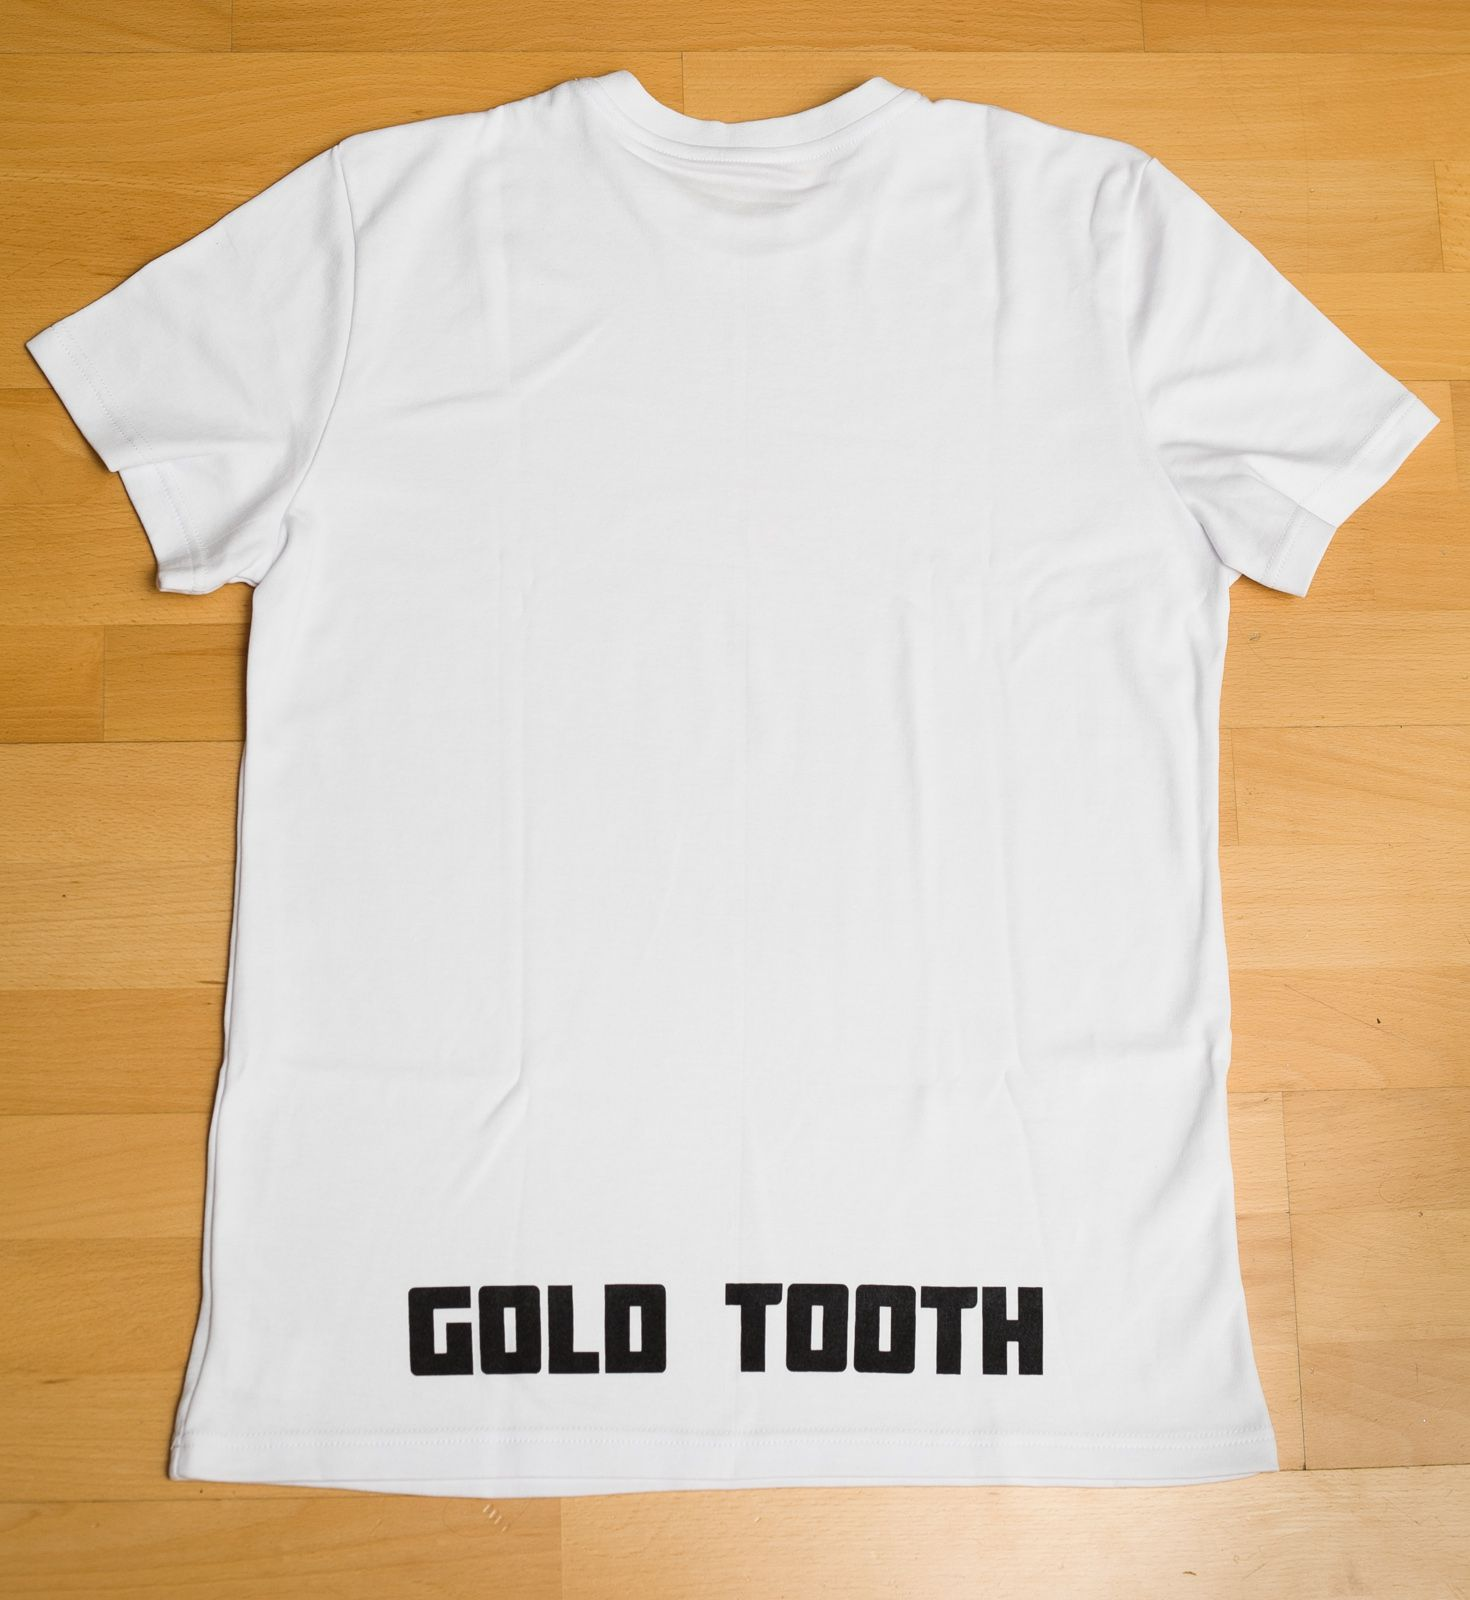 clothes goldtoothco tshirt